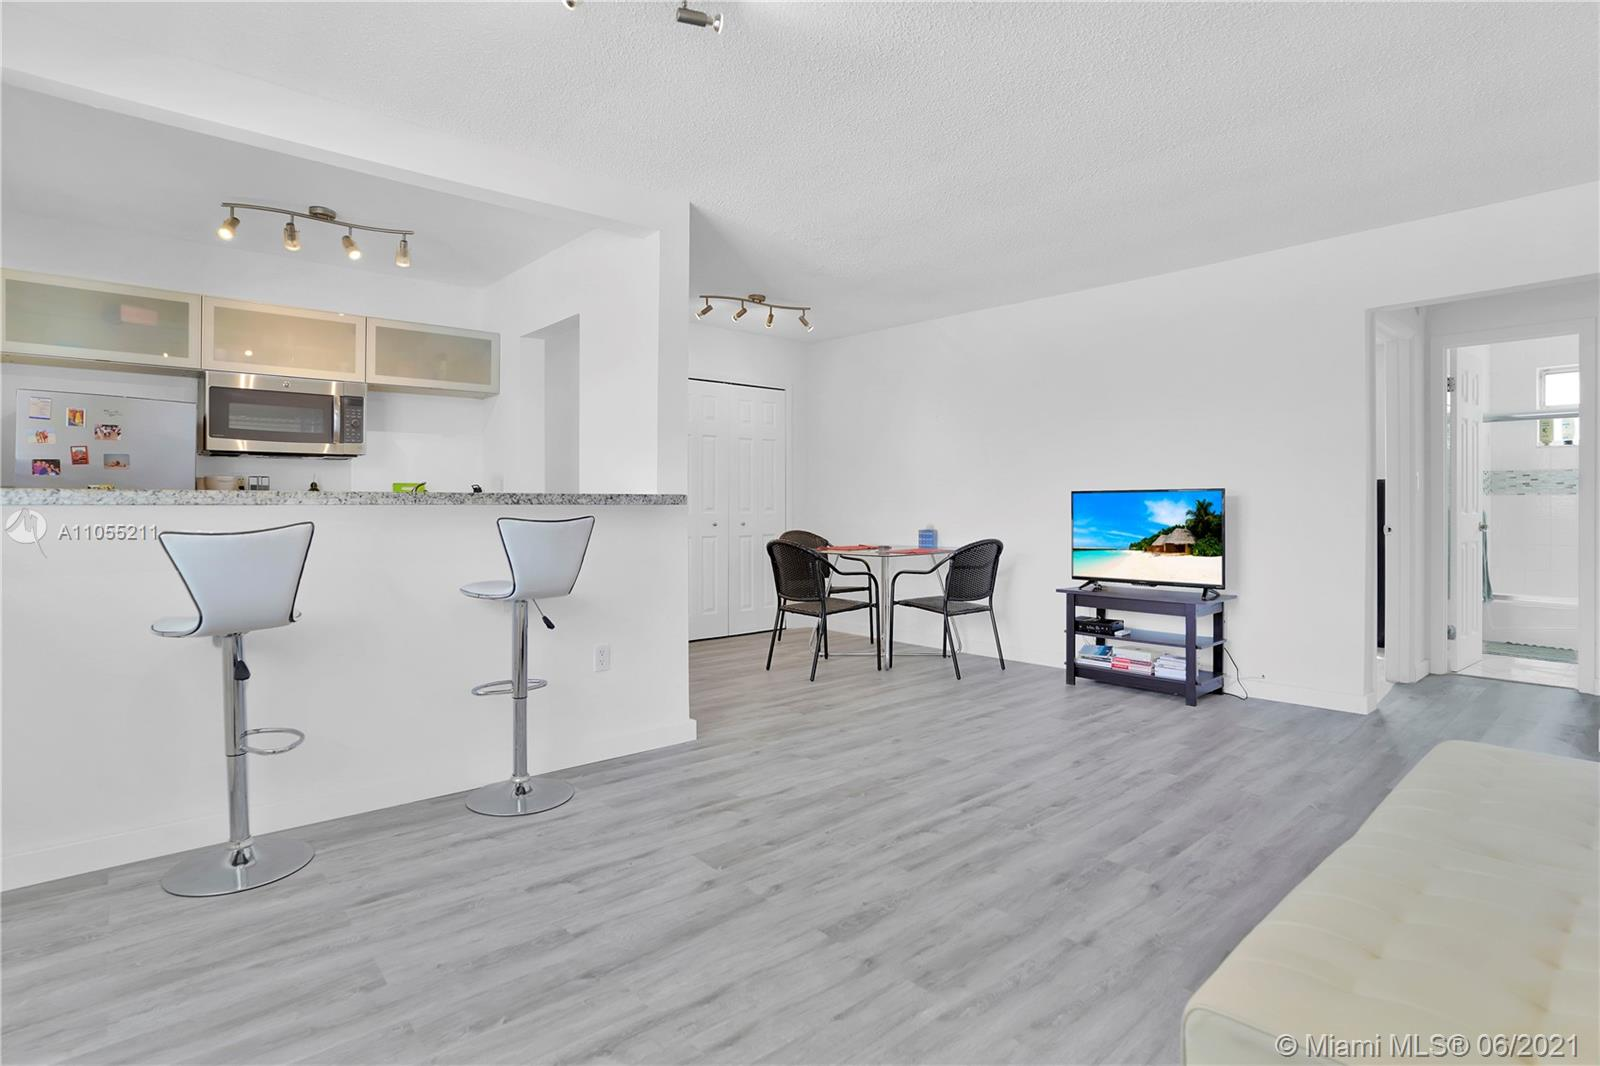 734  Meridian Ave #4 For Sale A11055211, FL